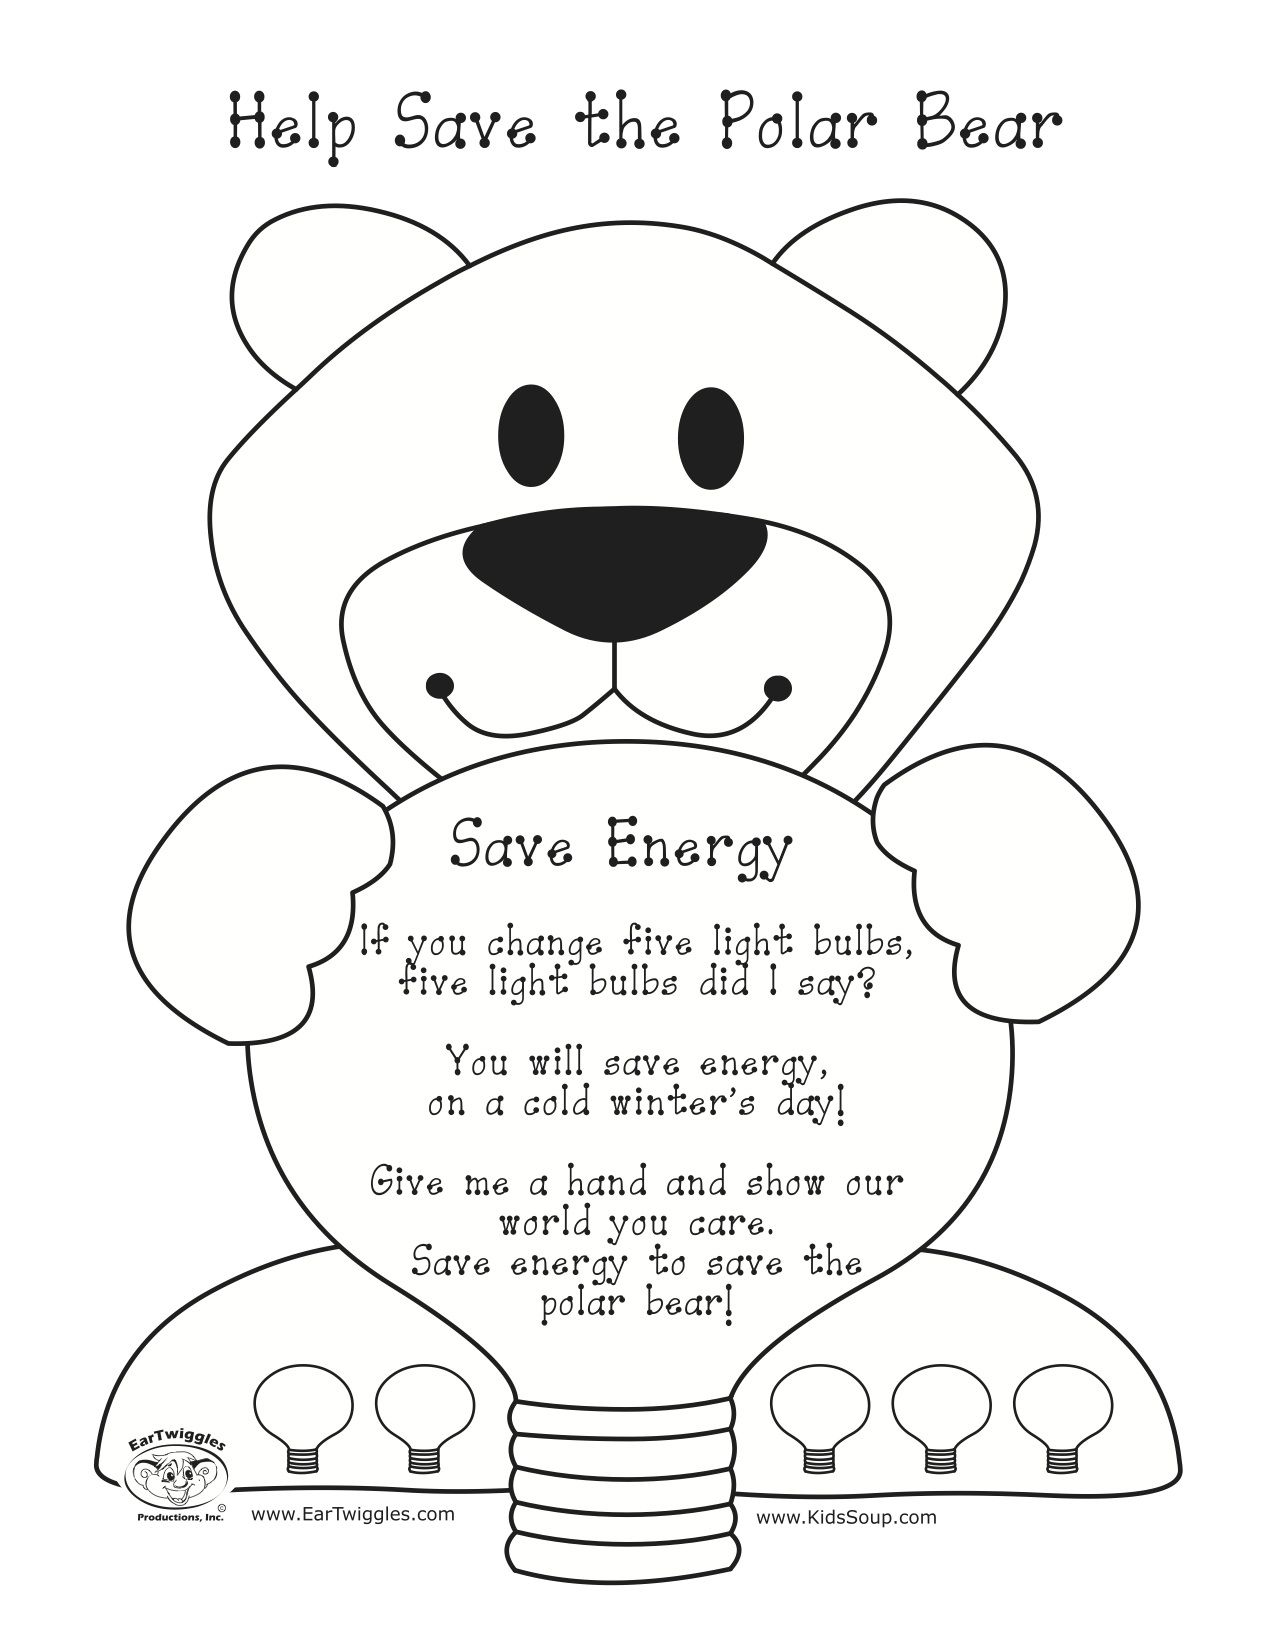 Help Save The Polar Bear Rhyme And Picture To Color Http Www Kidssoup Com Polar Bear P Save The Polar Bears Arctic Animals Preschool Kindergarten Worksheets [ 1650 x 1275 Pixel ]